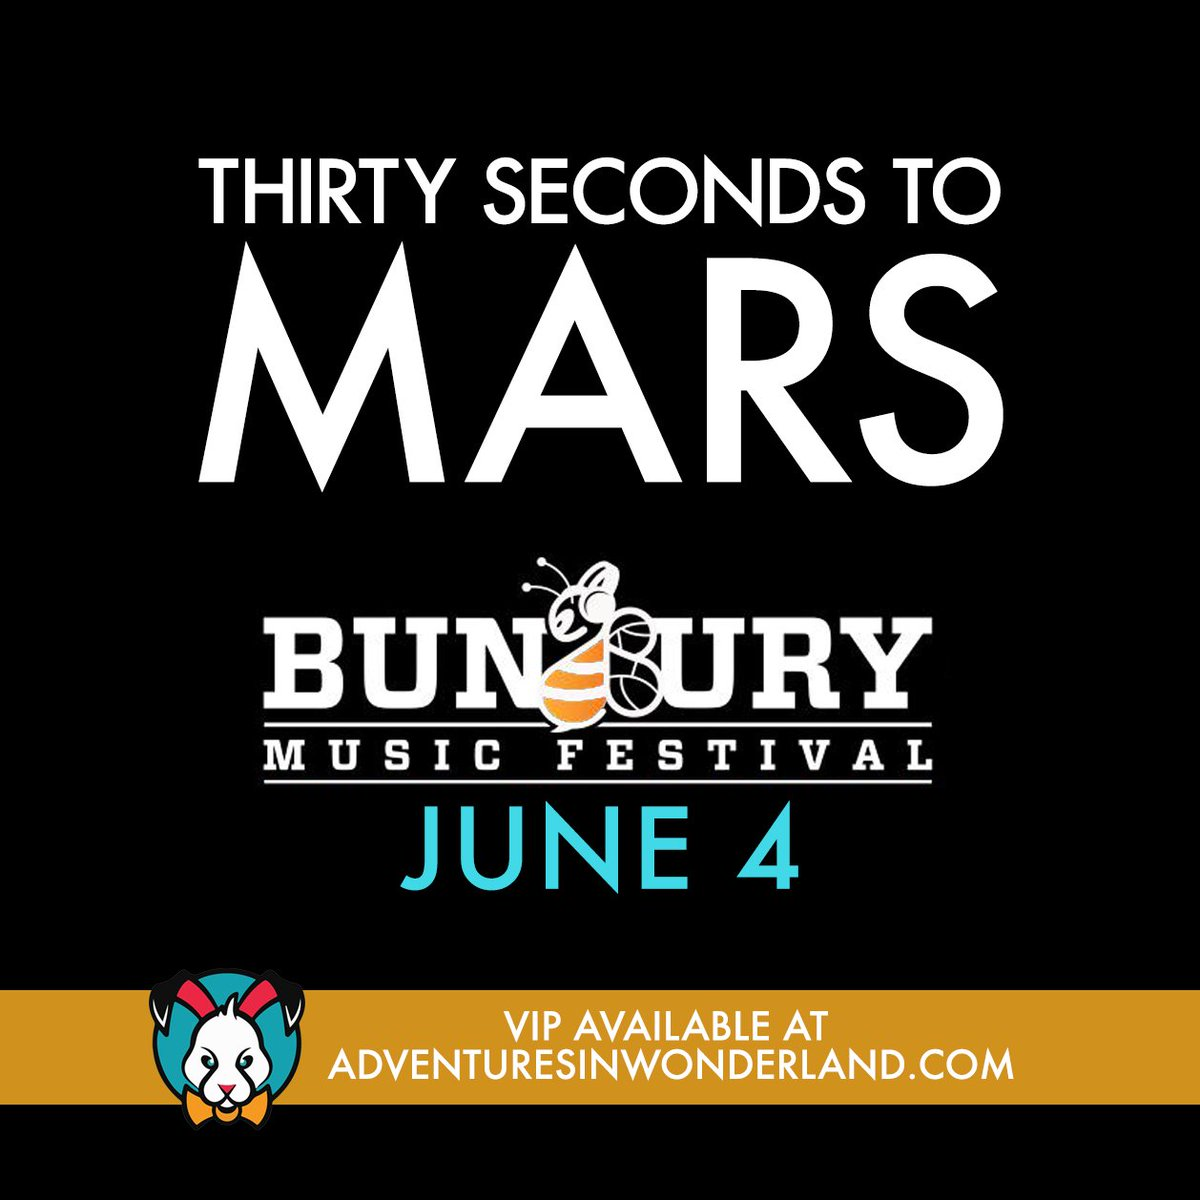 MARS IS COMING to @BunburyFestival! / VIP: https://t.co/HBYgqXmOb7 @30SECONDSTOMARS https://t.co/7X4im9Fltr